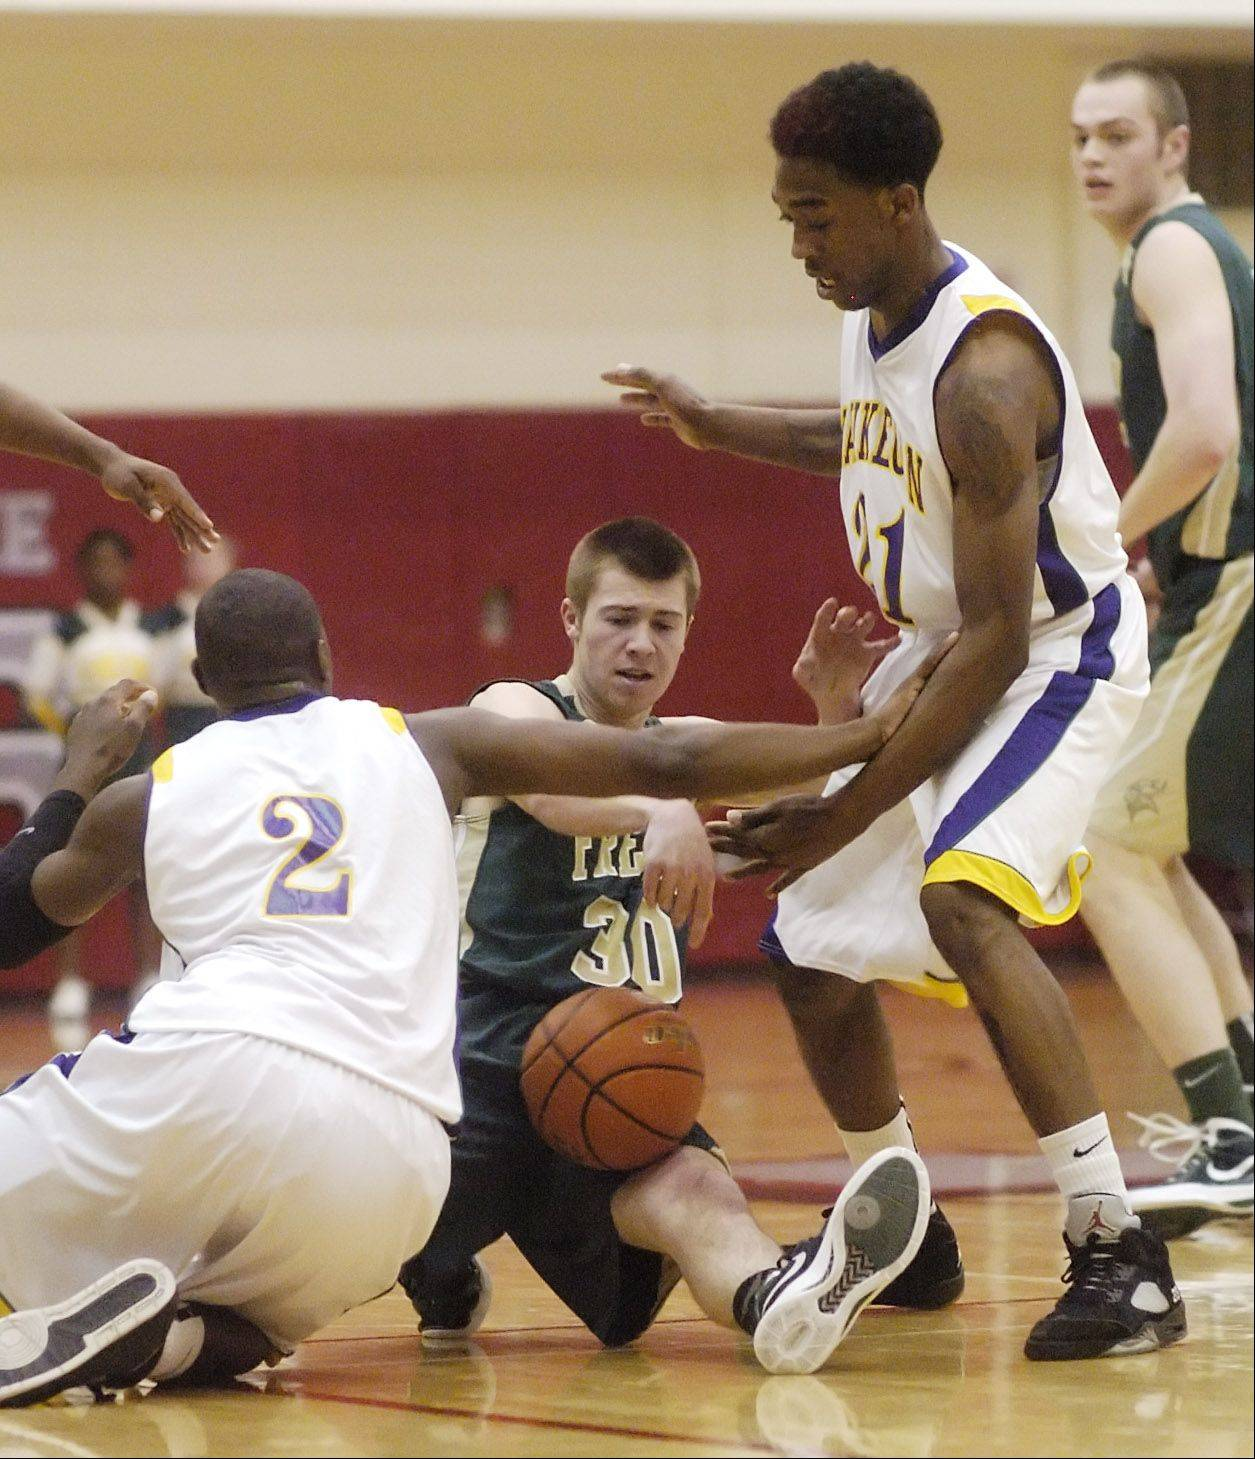 Waukegan defenders Akeem Springs, left, and DeVonte Taylor, right, try to force a turnover on Fremd's Matt Wisniewski during Tuesday's regional semifinal at Palatine.